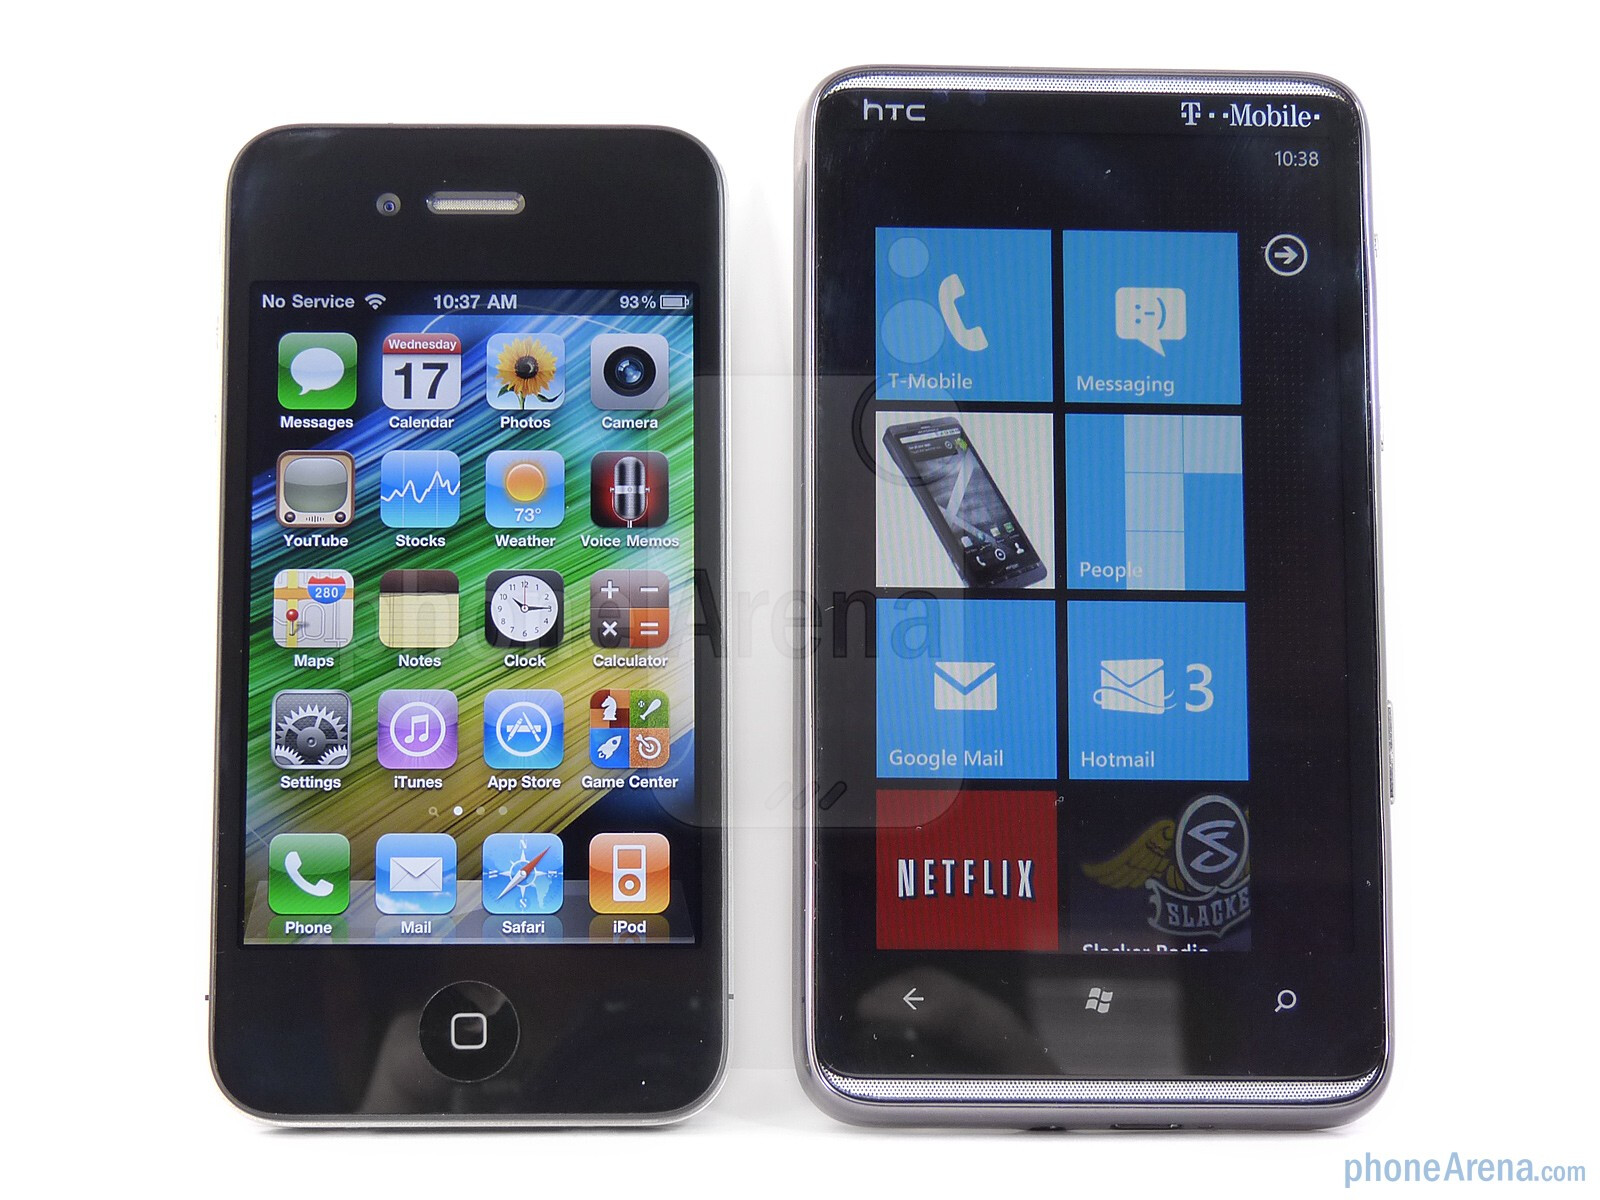 Htc Hd7 Vs Apple Iphone 4 Nokia 5800 Web Browser Diagram The Left And Right